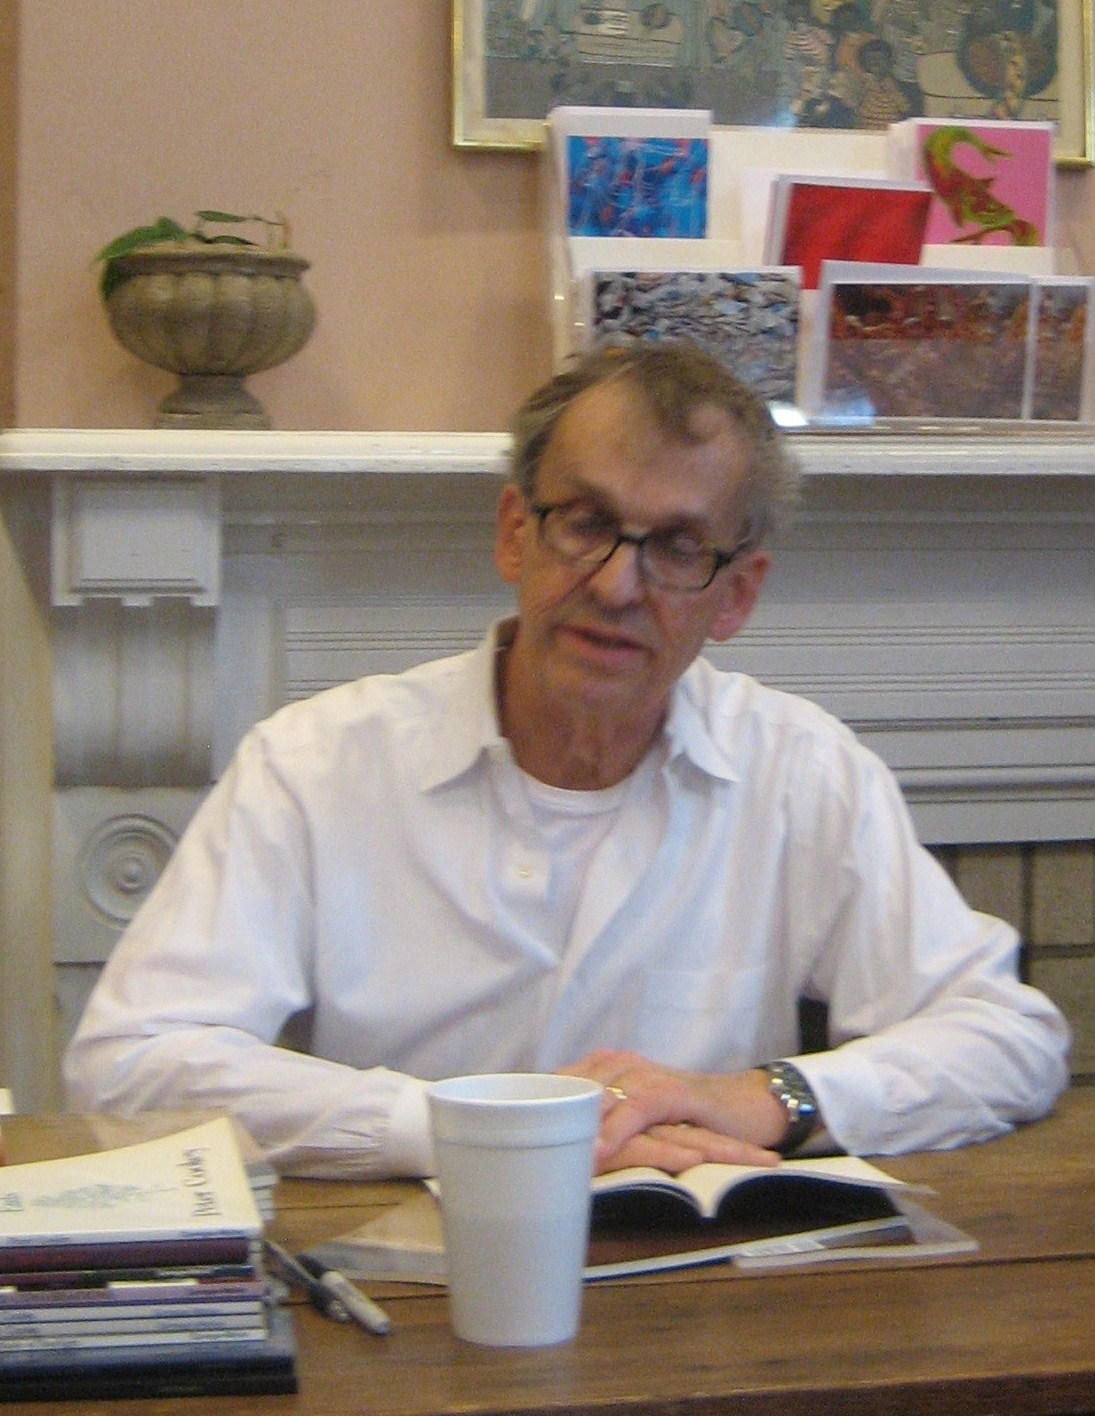 Peter Cooley